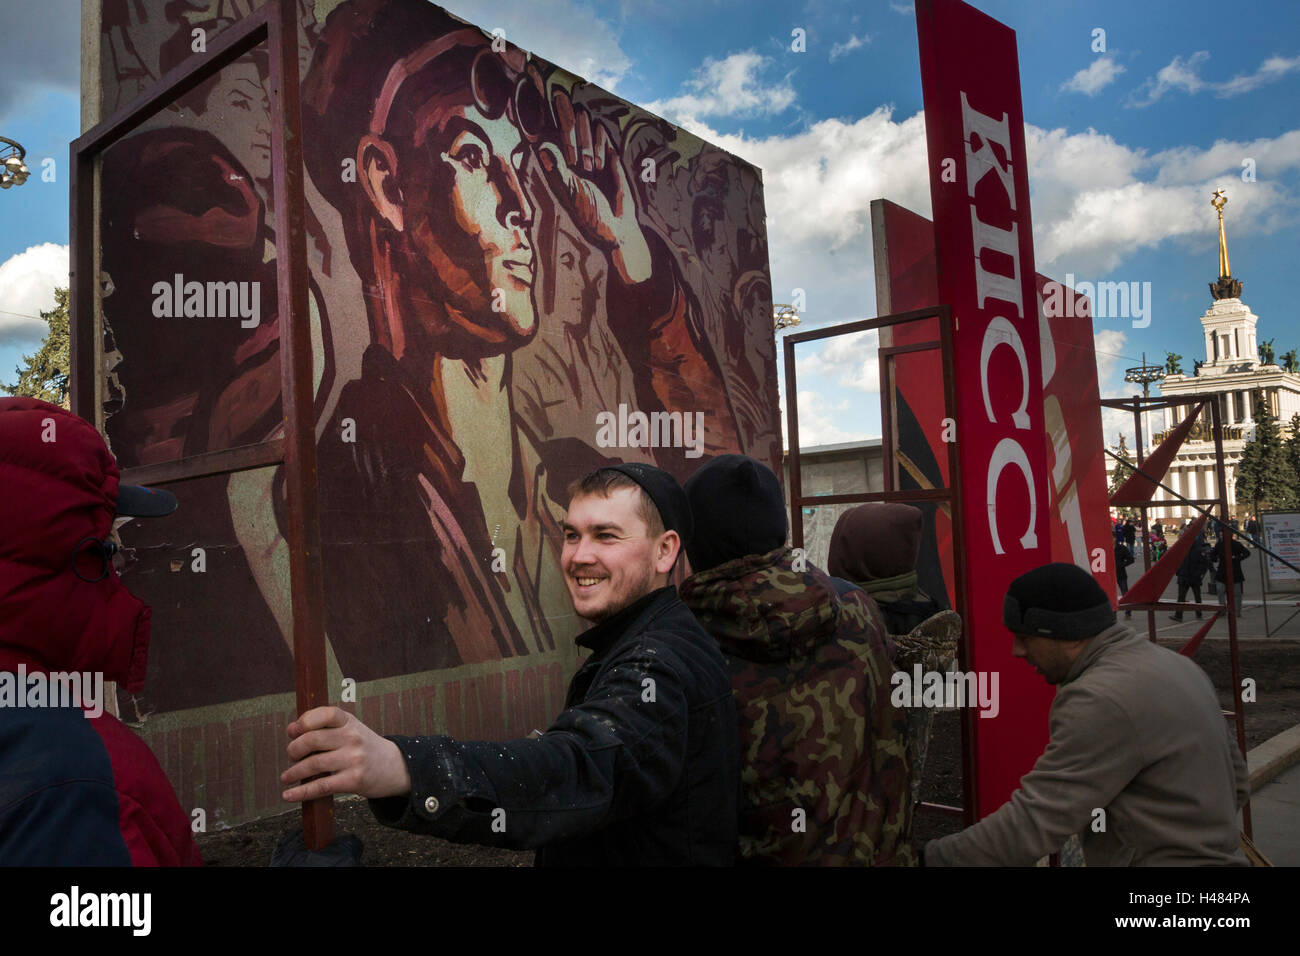 Workers install soviet placards at central avenue of the VDNKh the All-Russia Exhibition Centre in Moscow, Russia - Stock Image